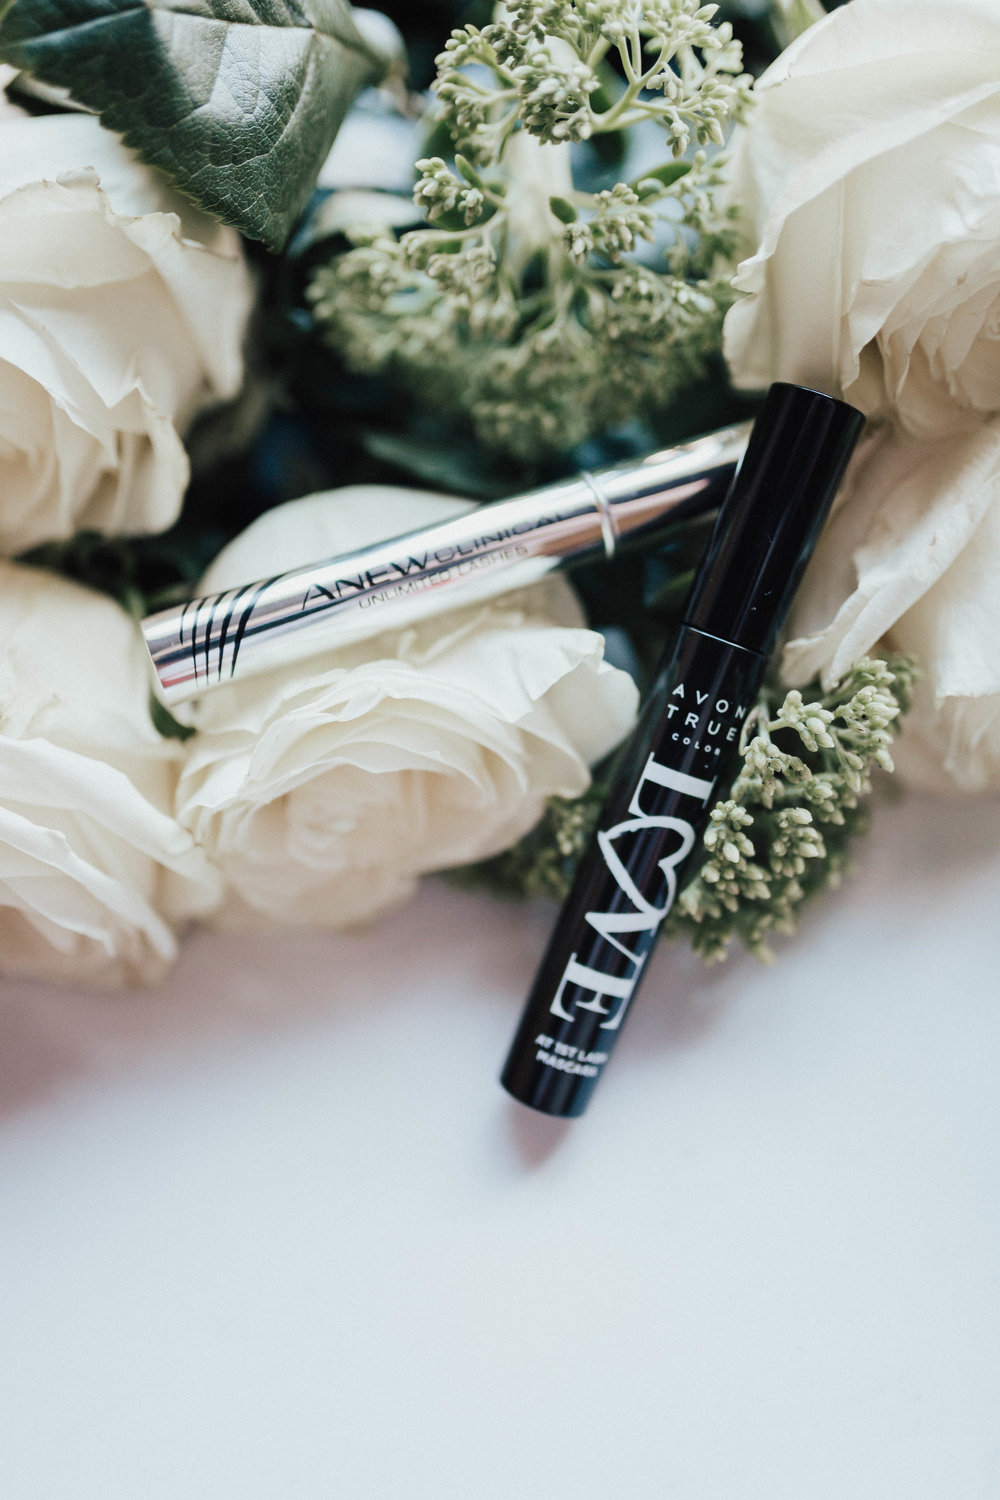 via Thea: Amping Up My Lashes with Avon